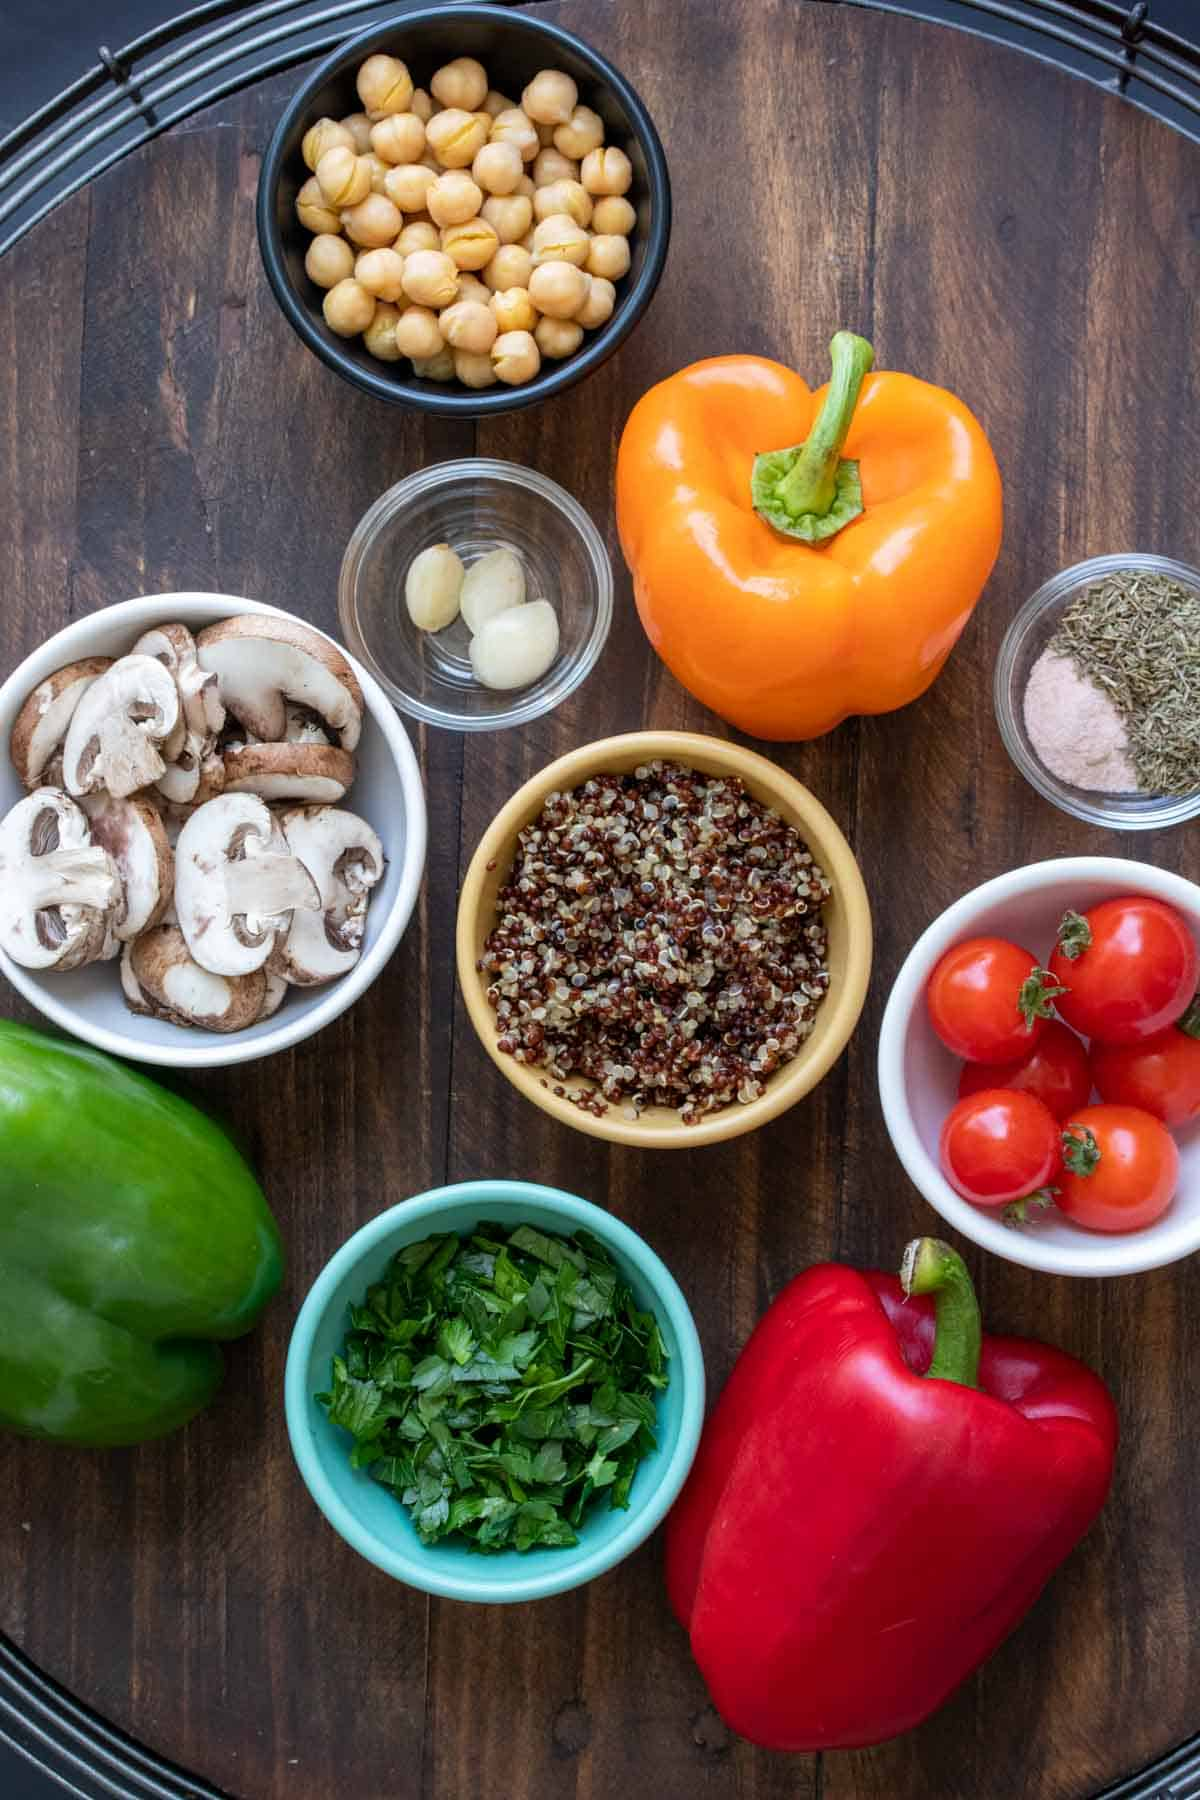 Ingredients used for stuffed peppers in bowls and on the wooden table